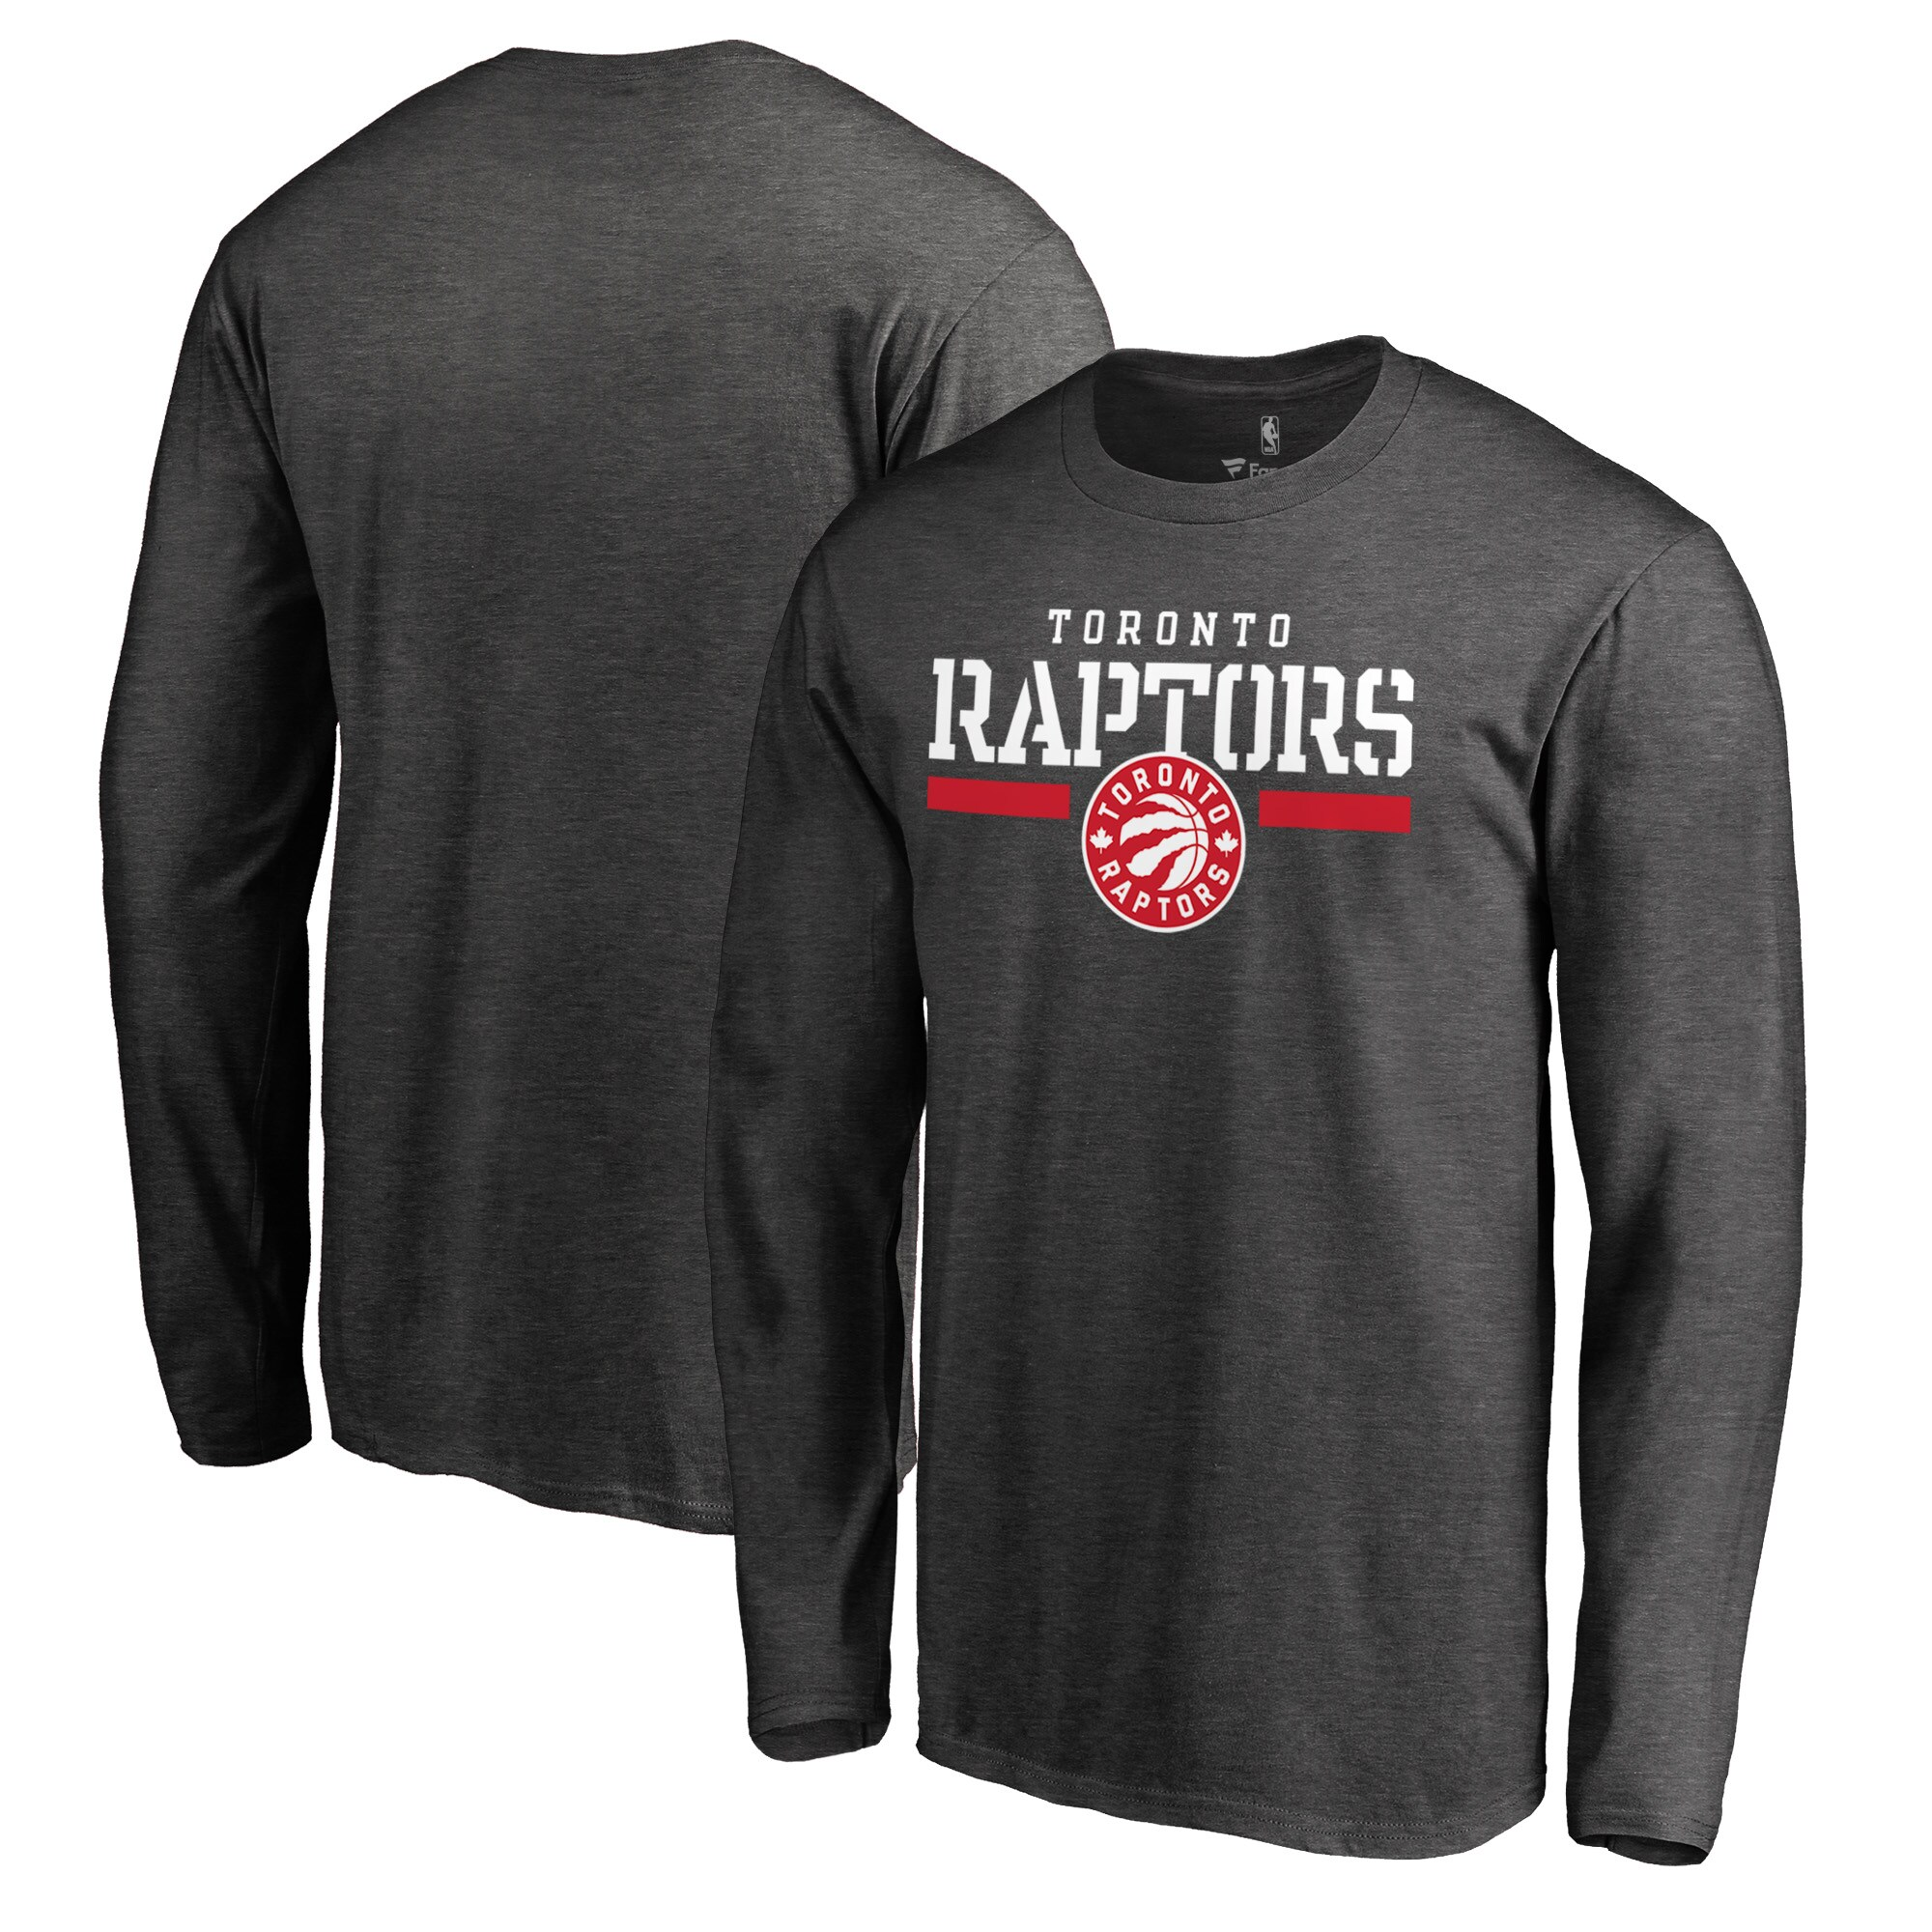 Toronto Raptors Fanatics Branded Hoops for Troops Long Sleeve T-Shirt - Heathered Gray